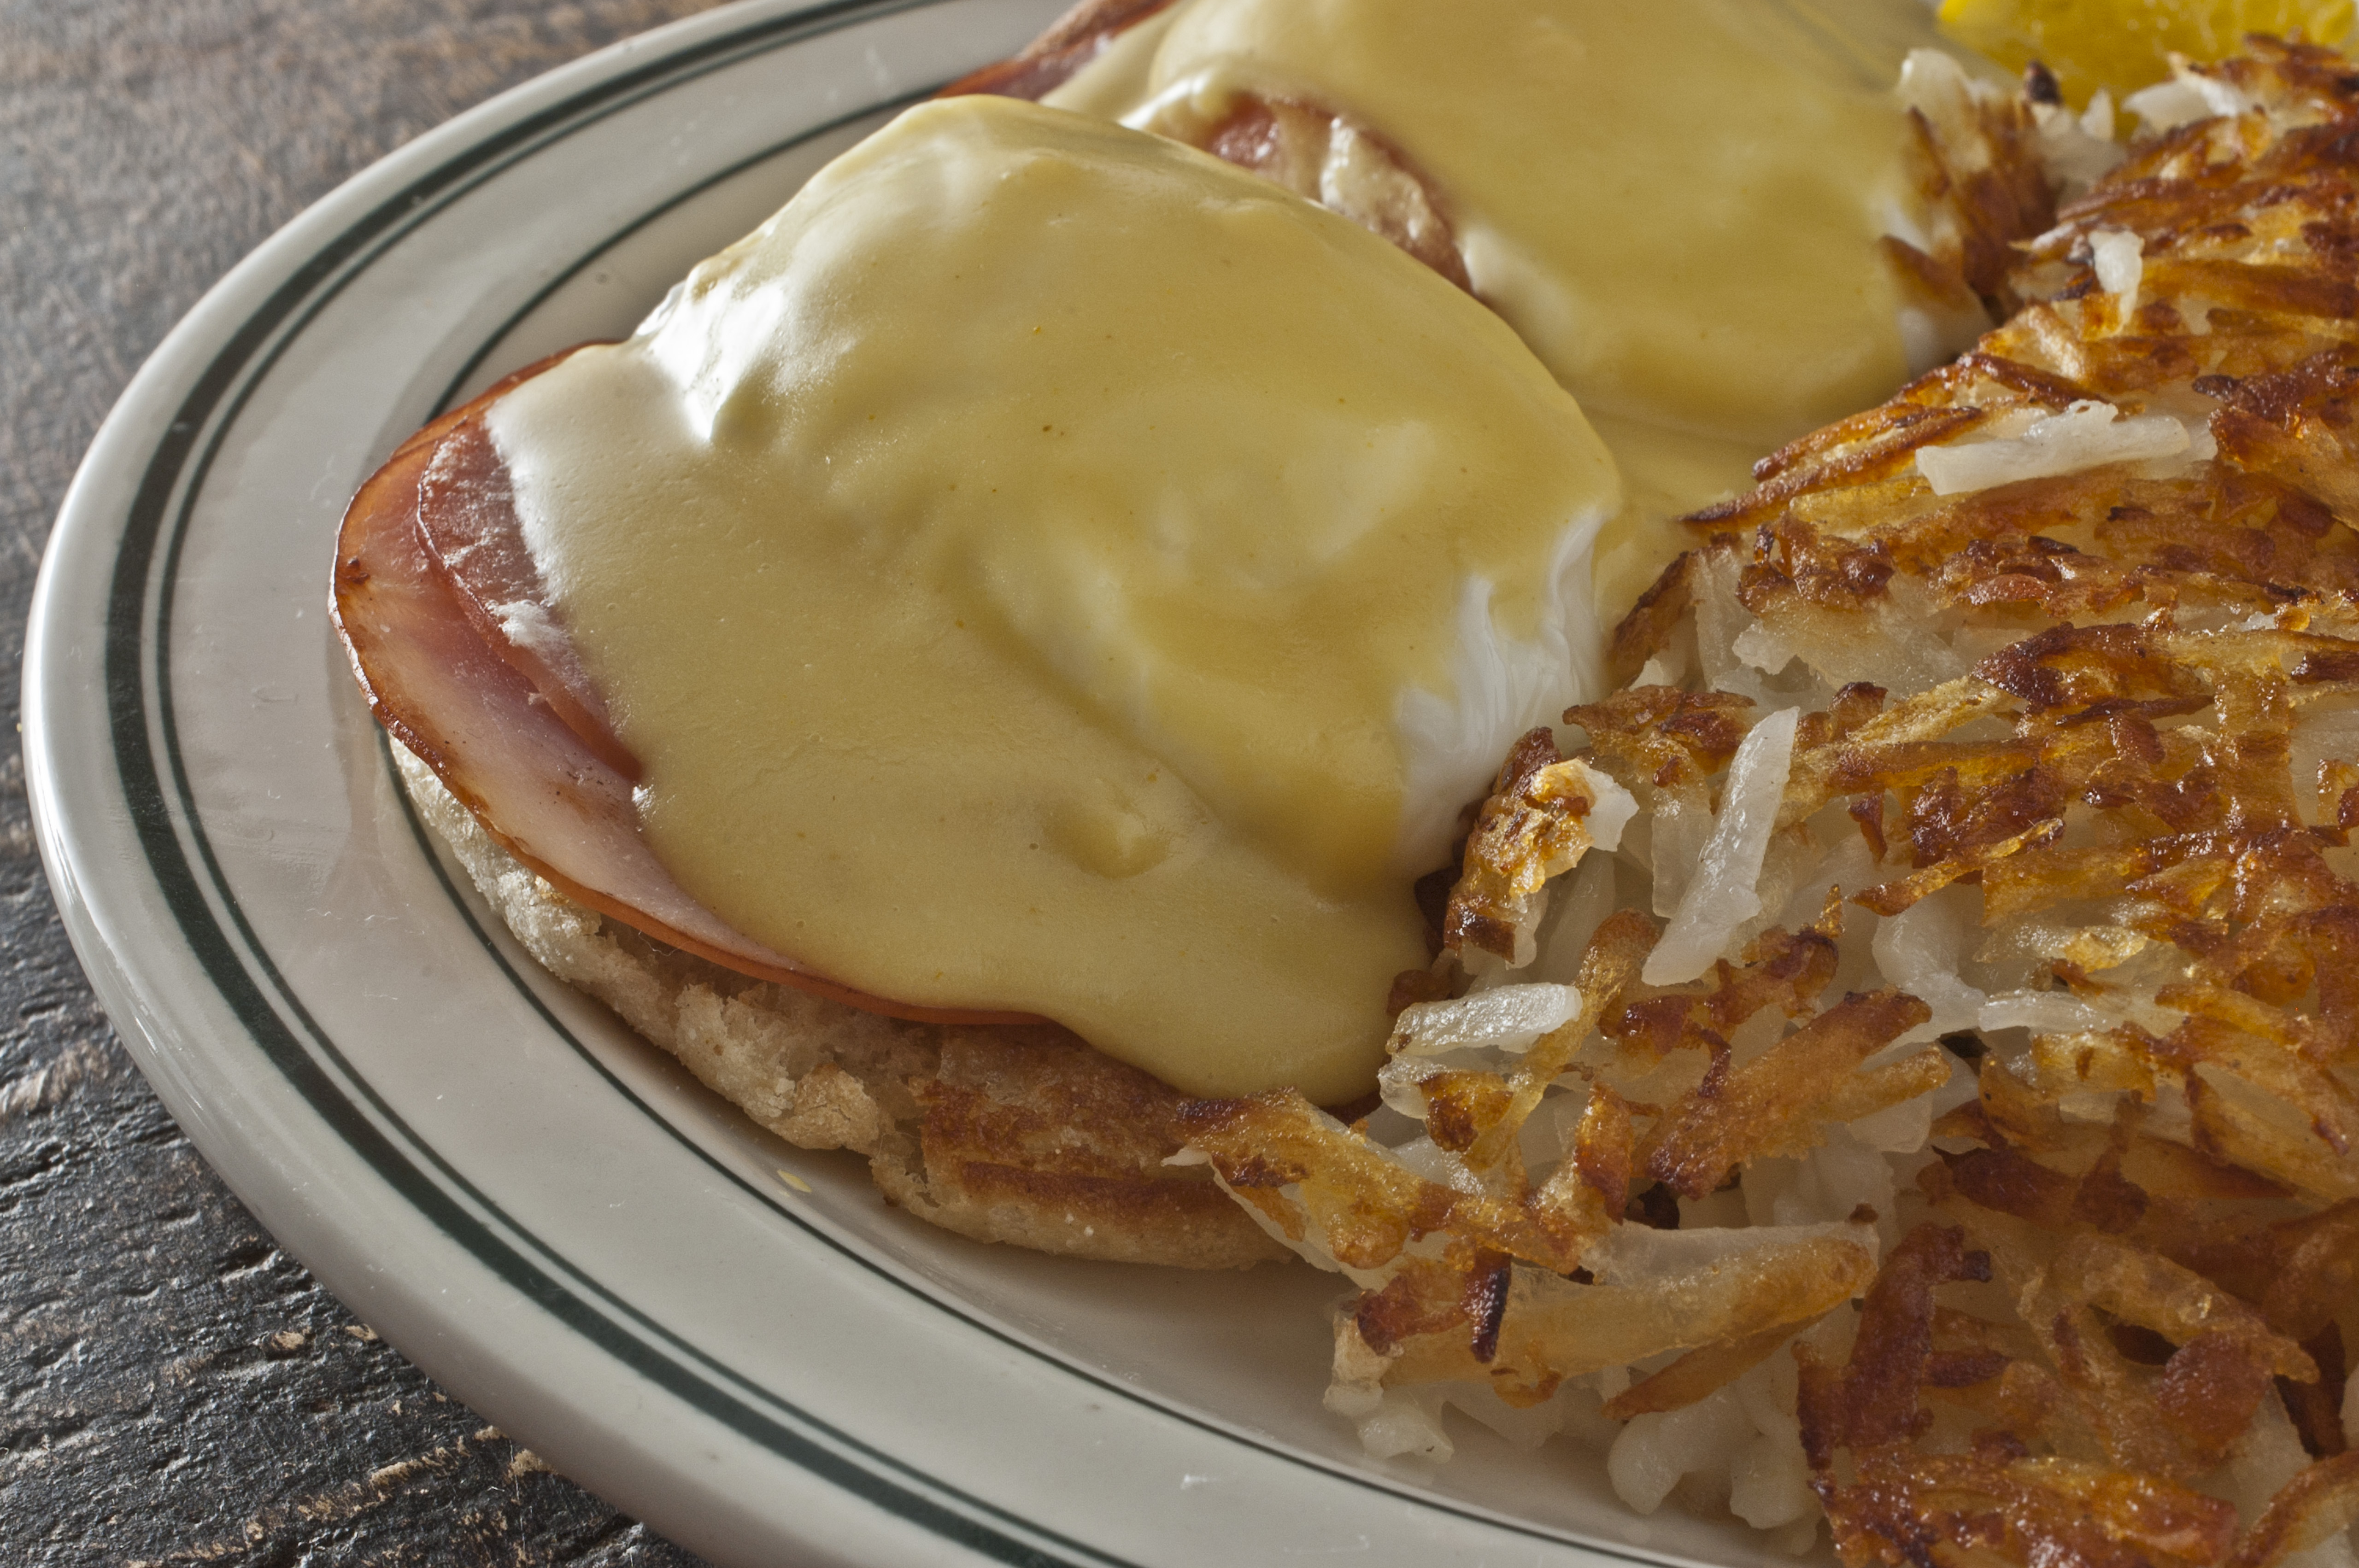 Power up with breakfast at Brent's Deli